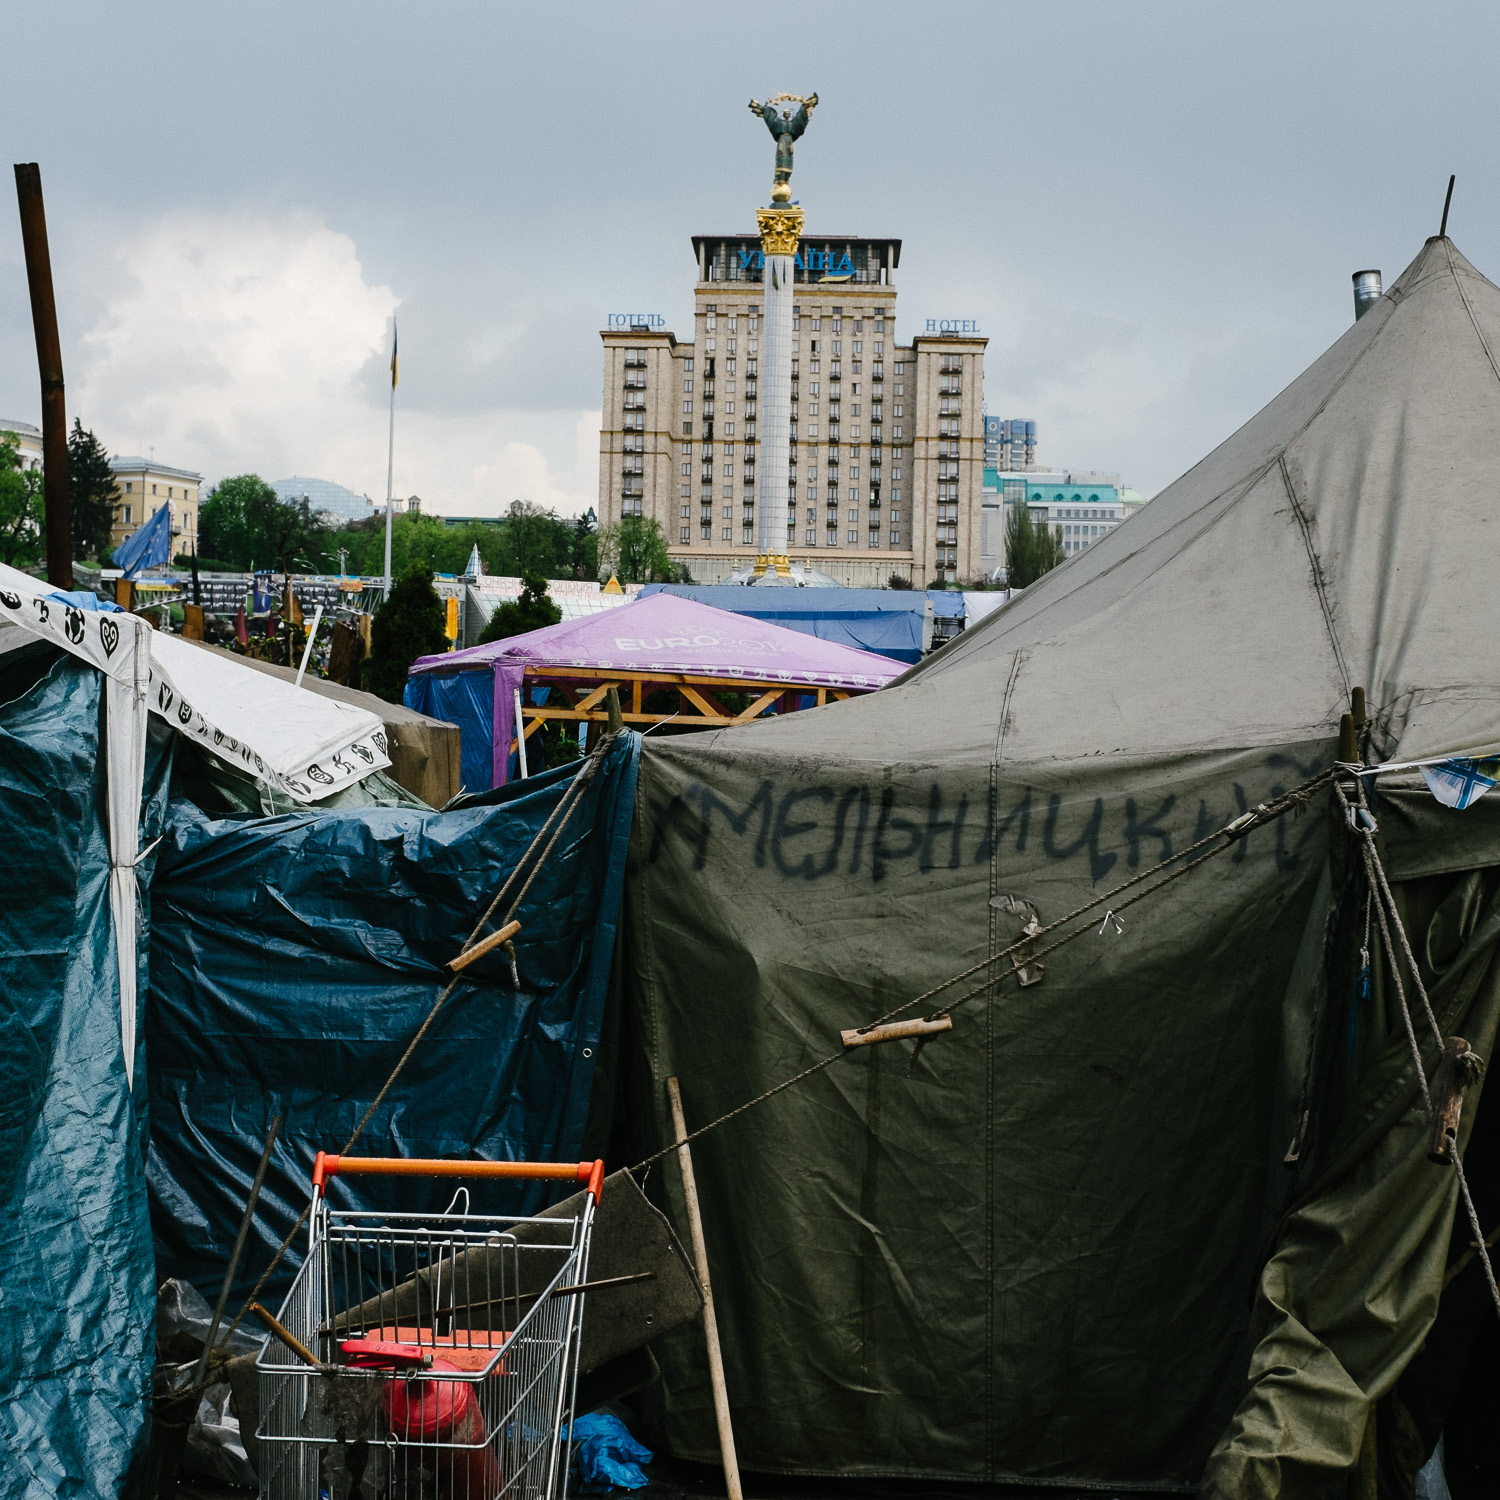 A tent marked with the word 'Khmelnytskyi', after a town in west-central Ukraine, pitched on Independence Square, Kiev, in April 2014. Those joining the 'Euromaidan' uprising often organised themselves into groups based around their home towns and cities.